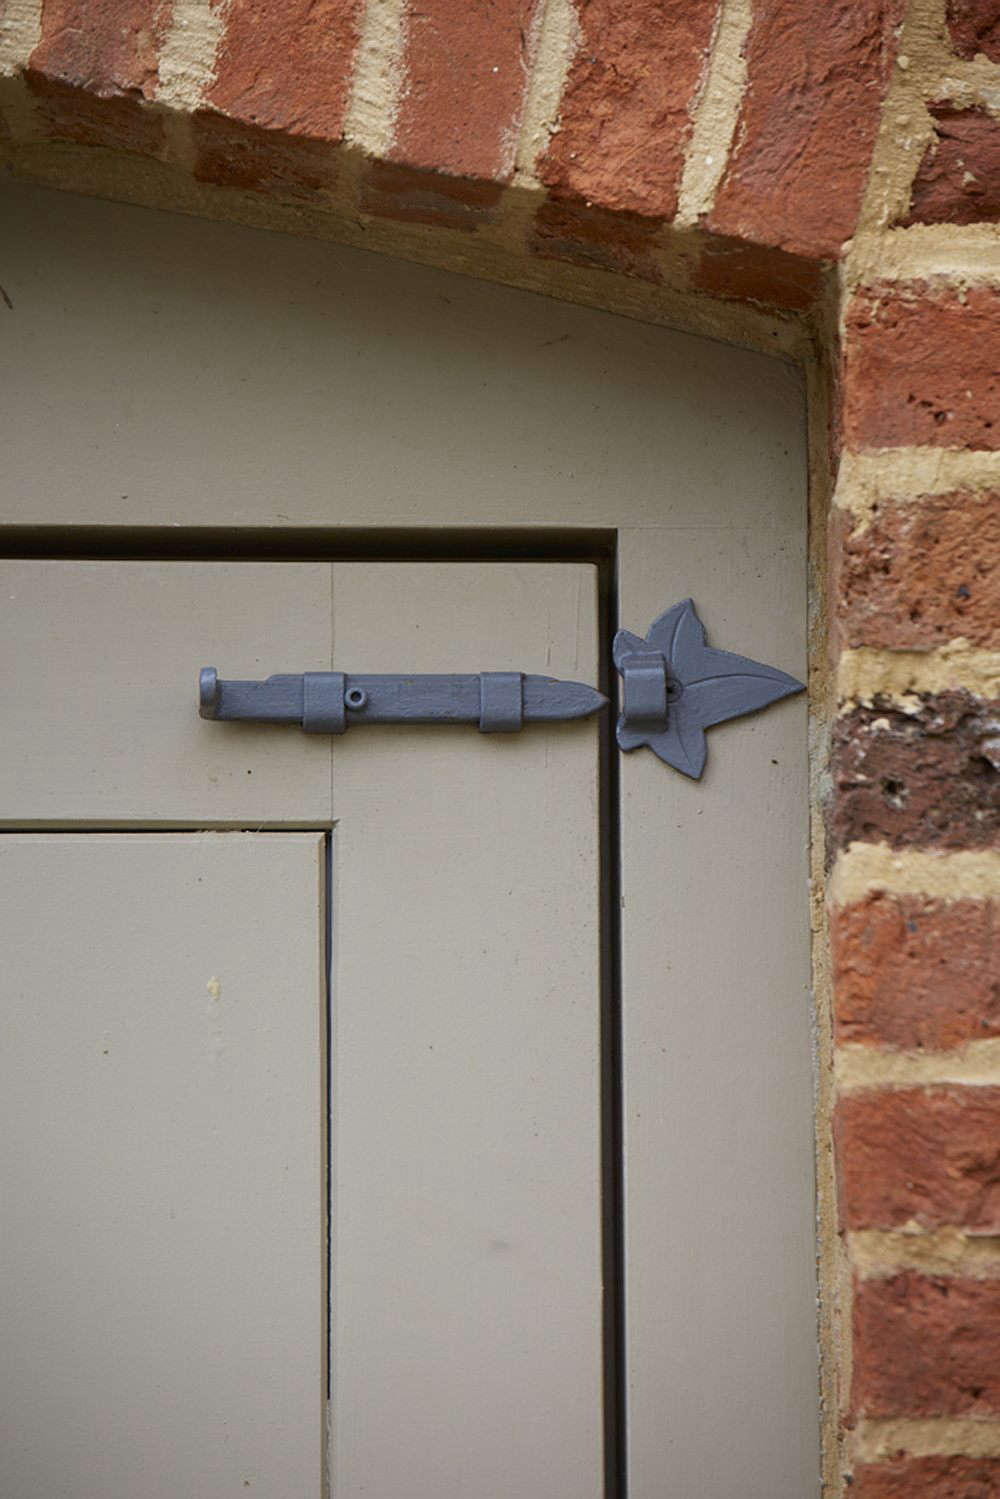 Ivy-leafed hardware is a leitmotif around the outbuildings.